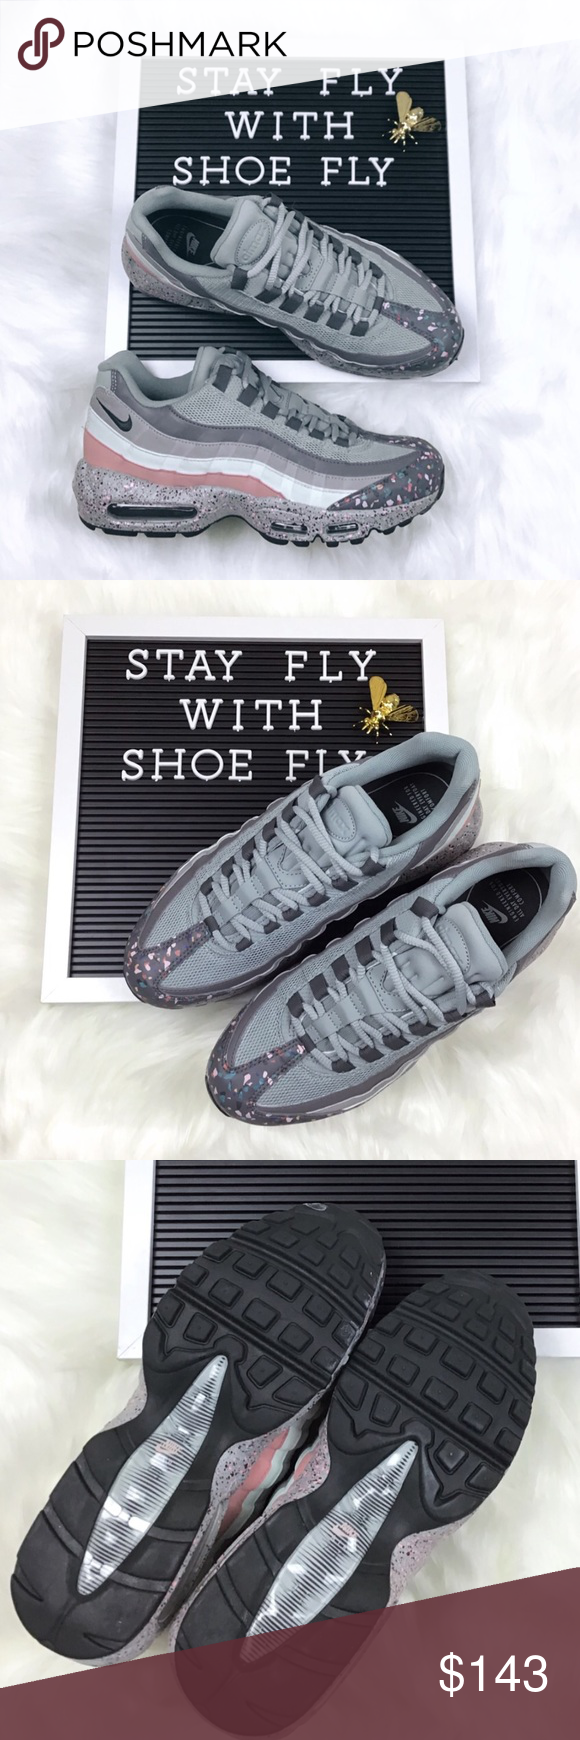 bbda6ce81d Nike Wmns Airmax 95 SE 'Confetti' Brand New without Box Women's size 9.5  Men's size 8 Grey/Light Pumice/Rust Pink Style Code: 918413-002 - Stay fly!